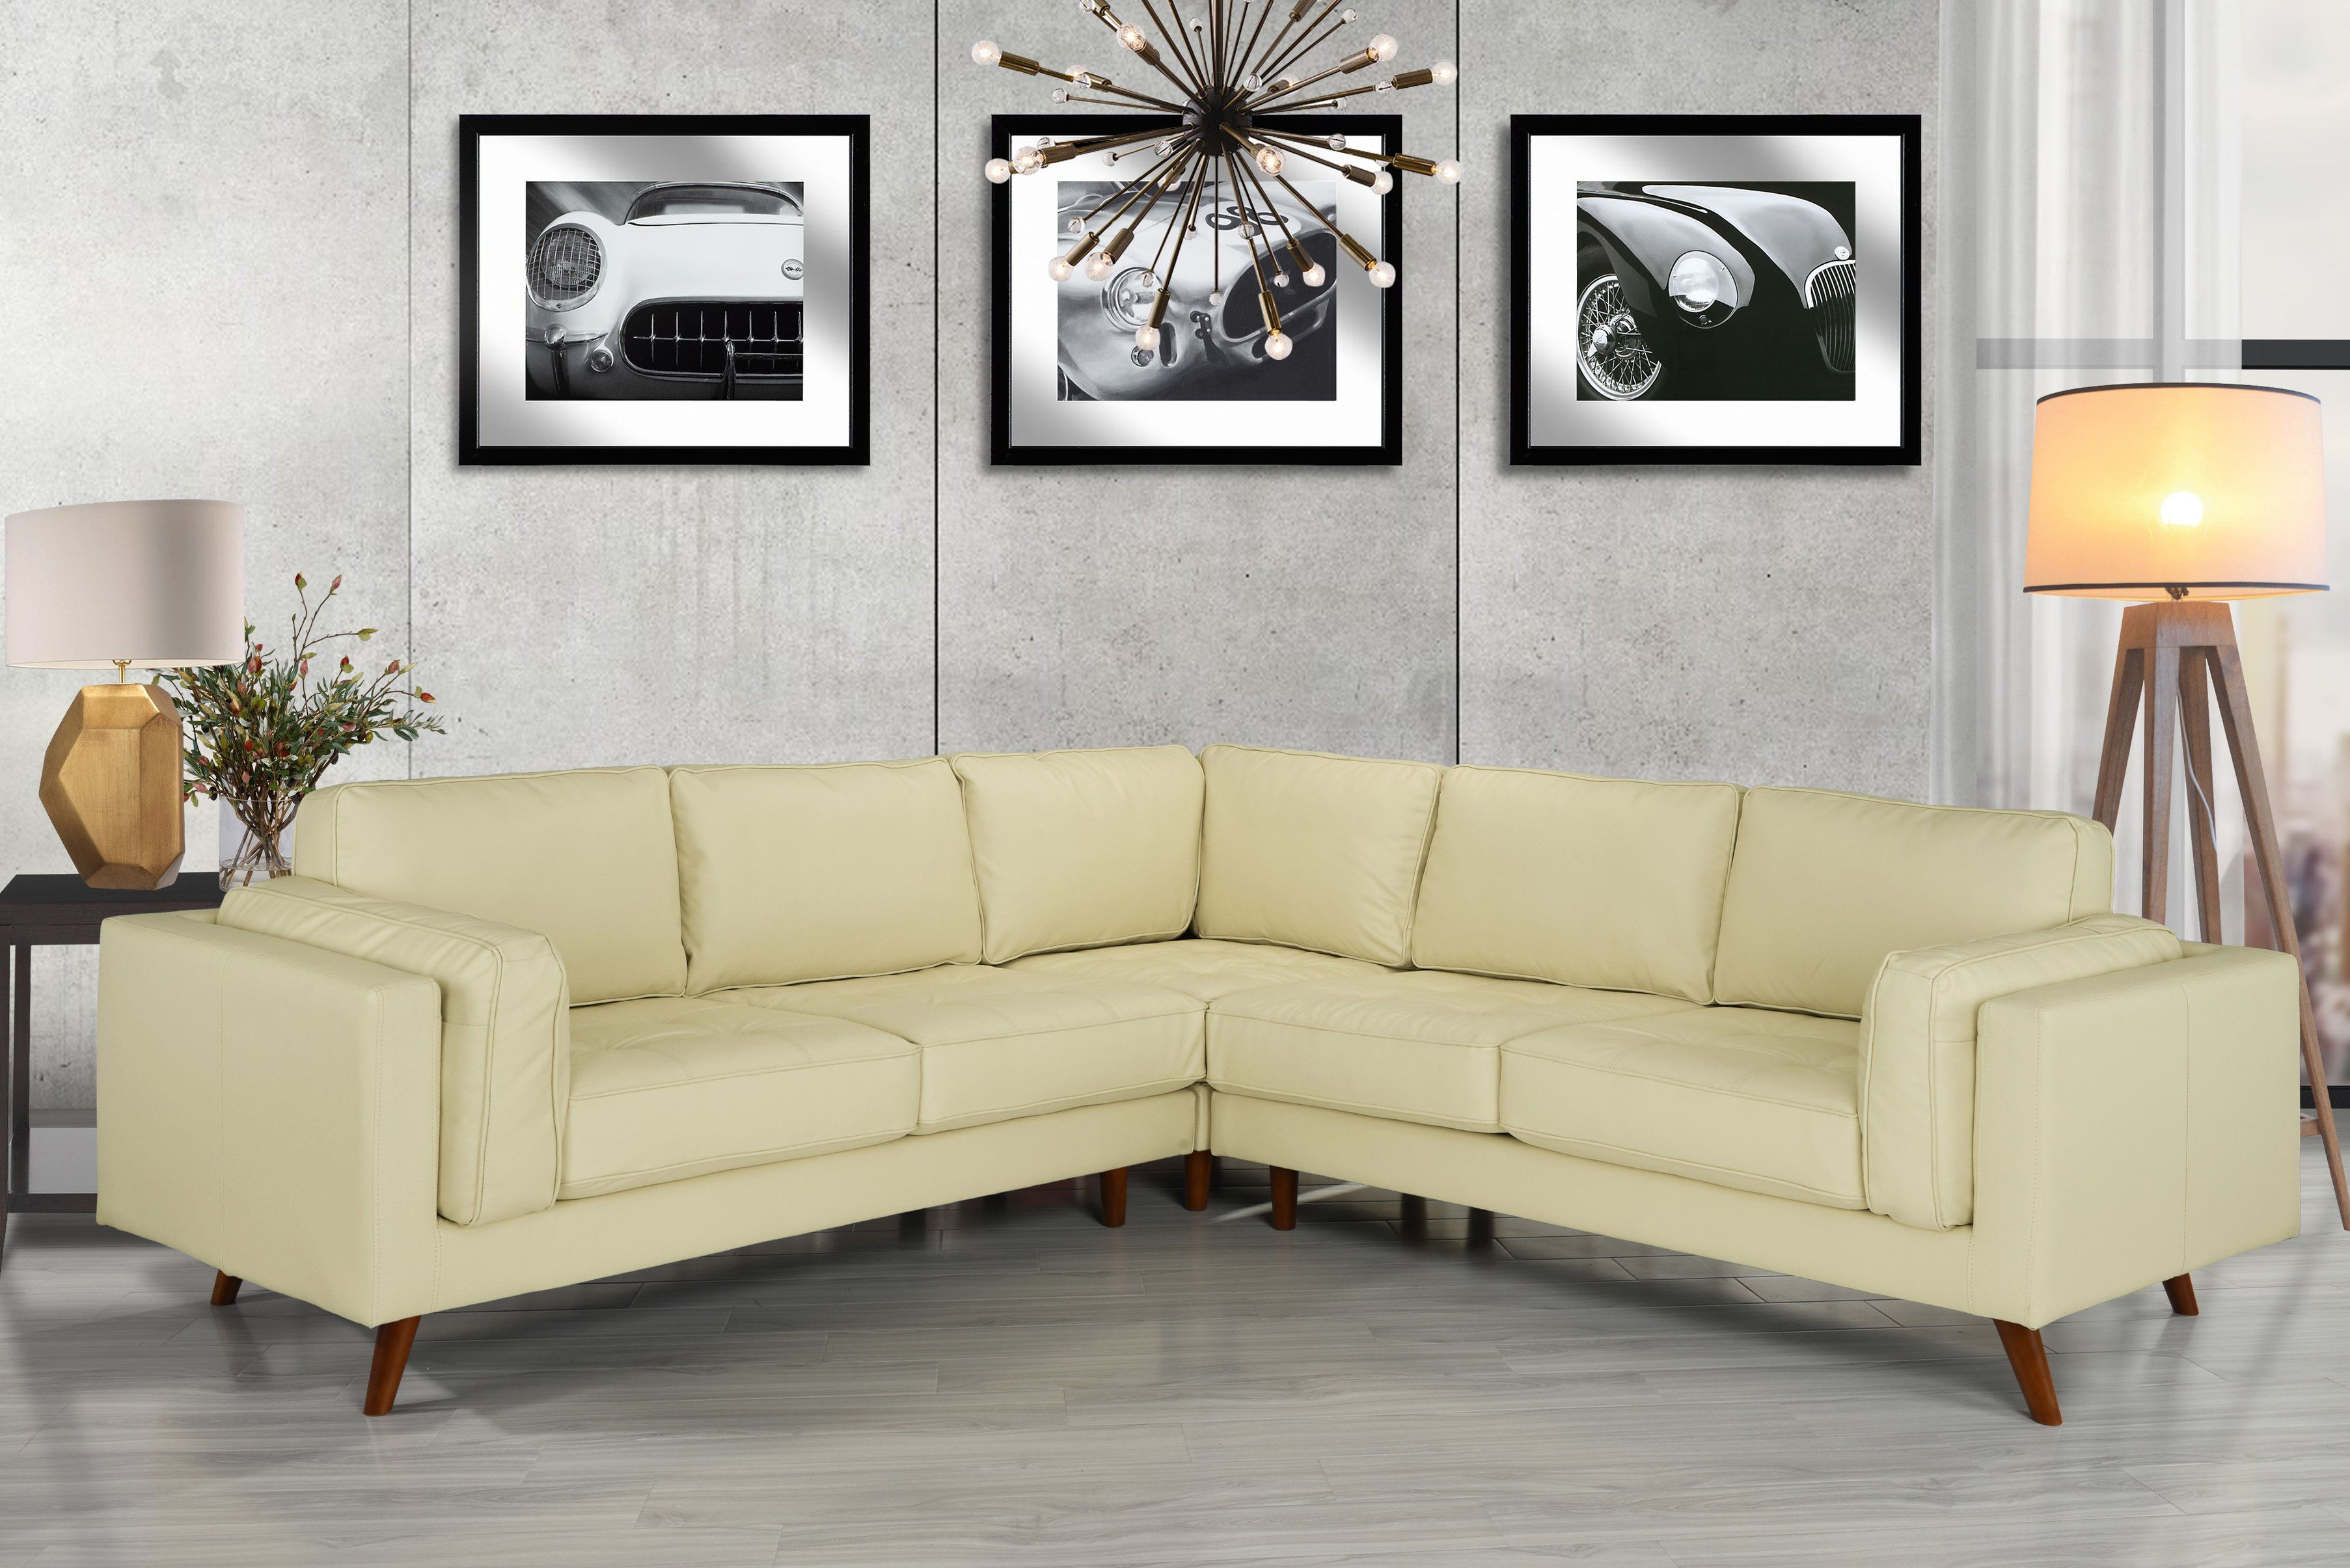 Details About Mid Century Modern Tufted Leather Sectional Sofa W Wooden Legs Beige